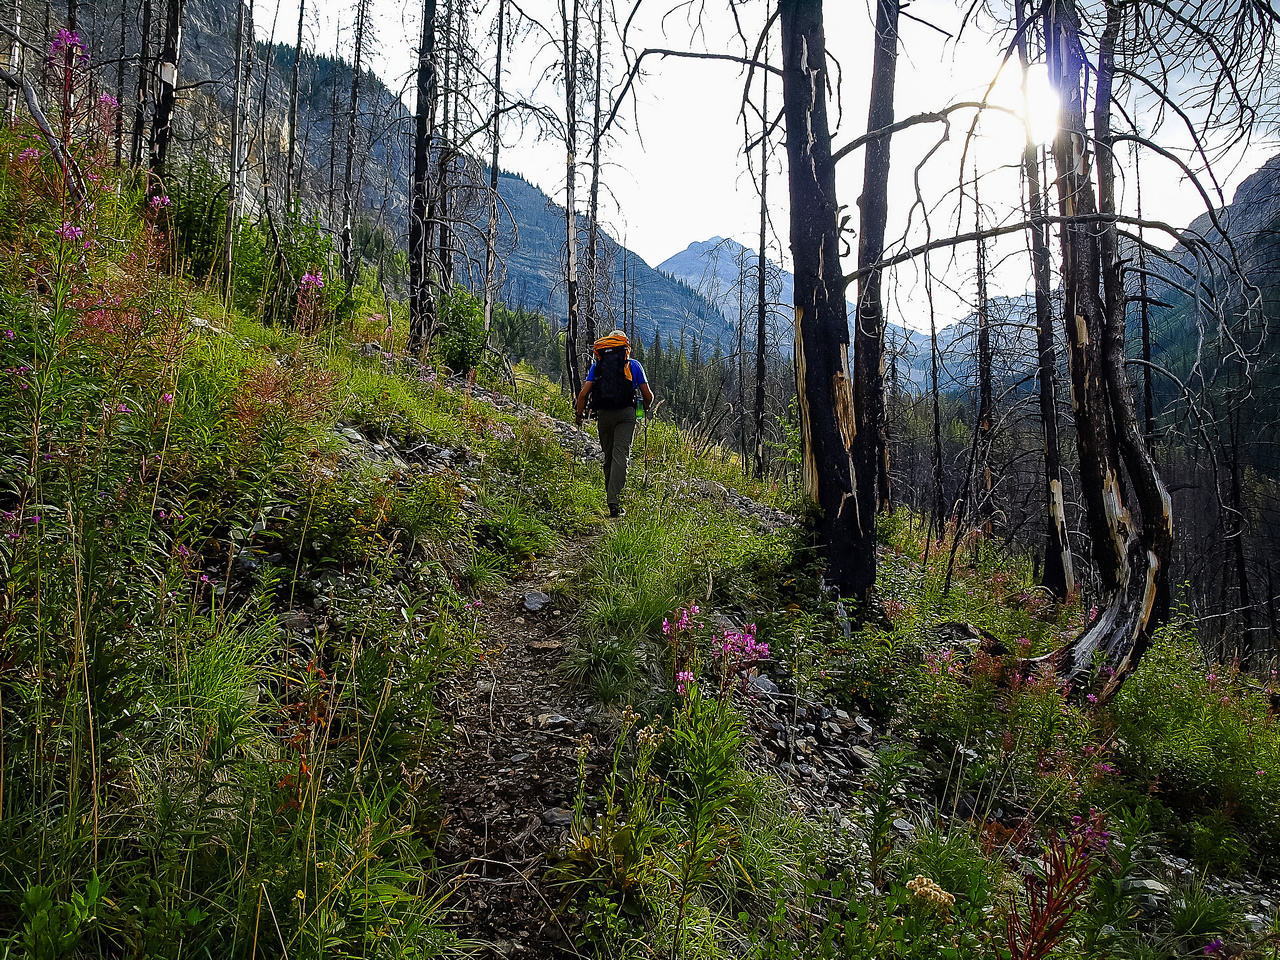 Hiking up the trail through the burnt forest gives tons of excellent photography opportunities.